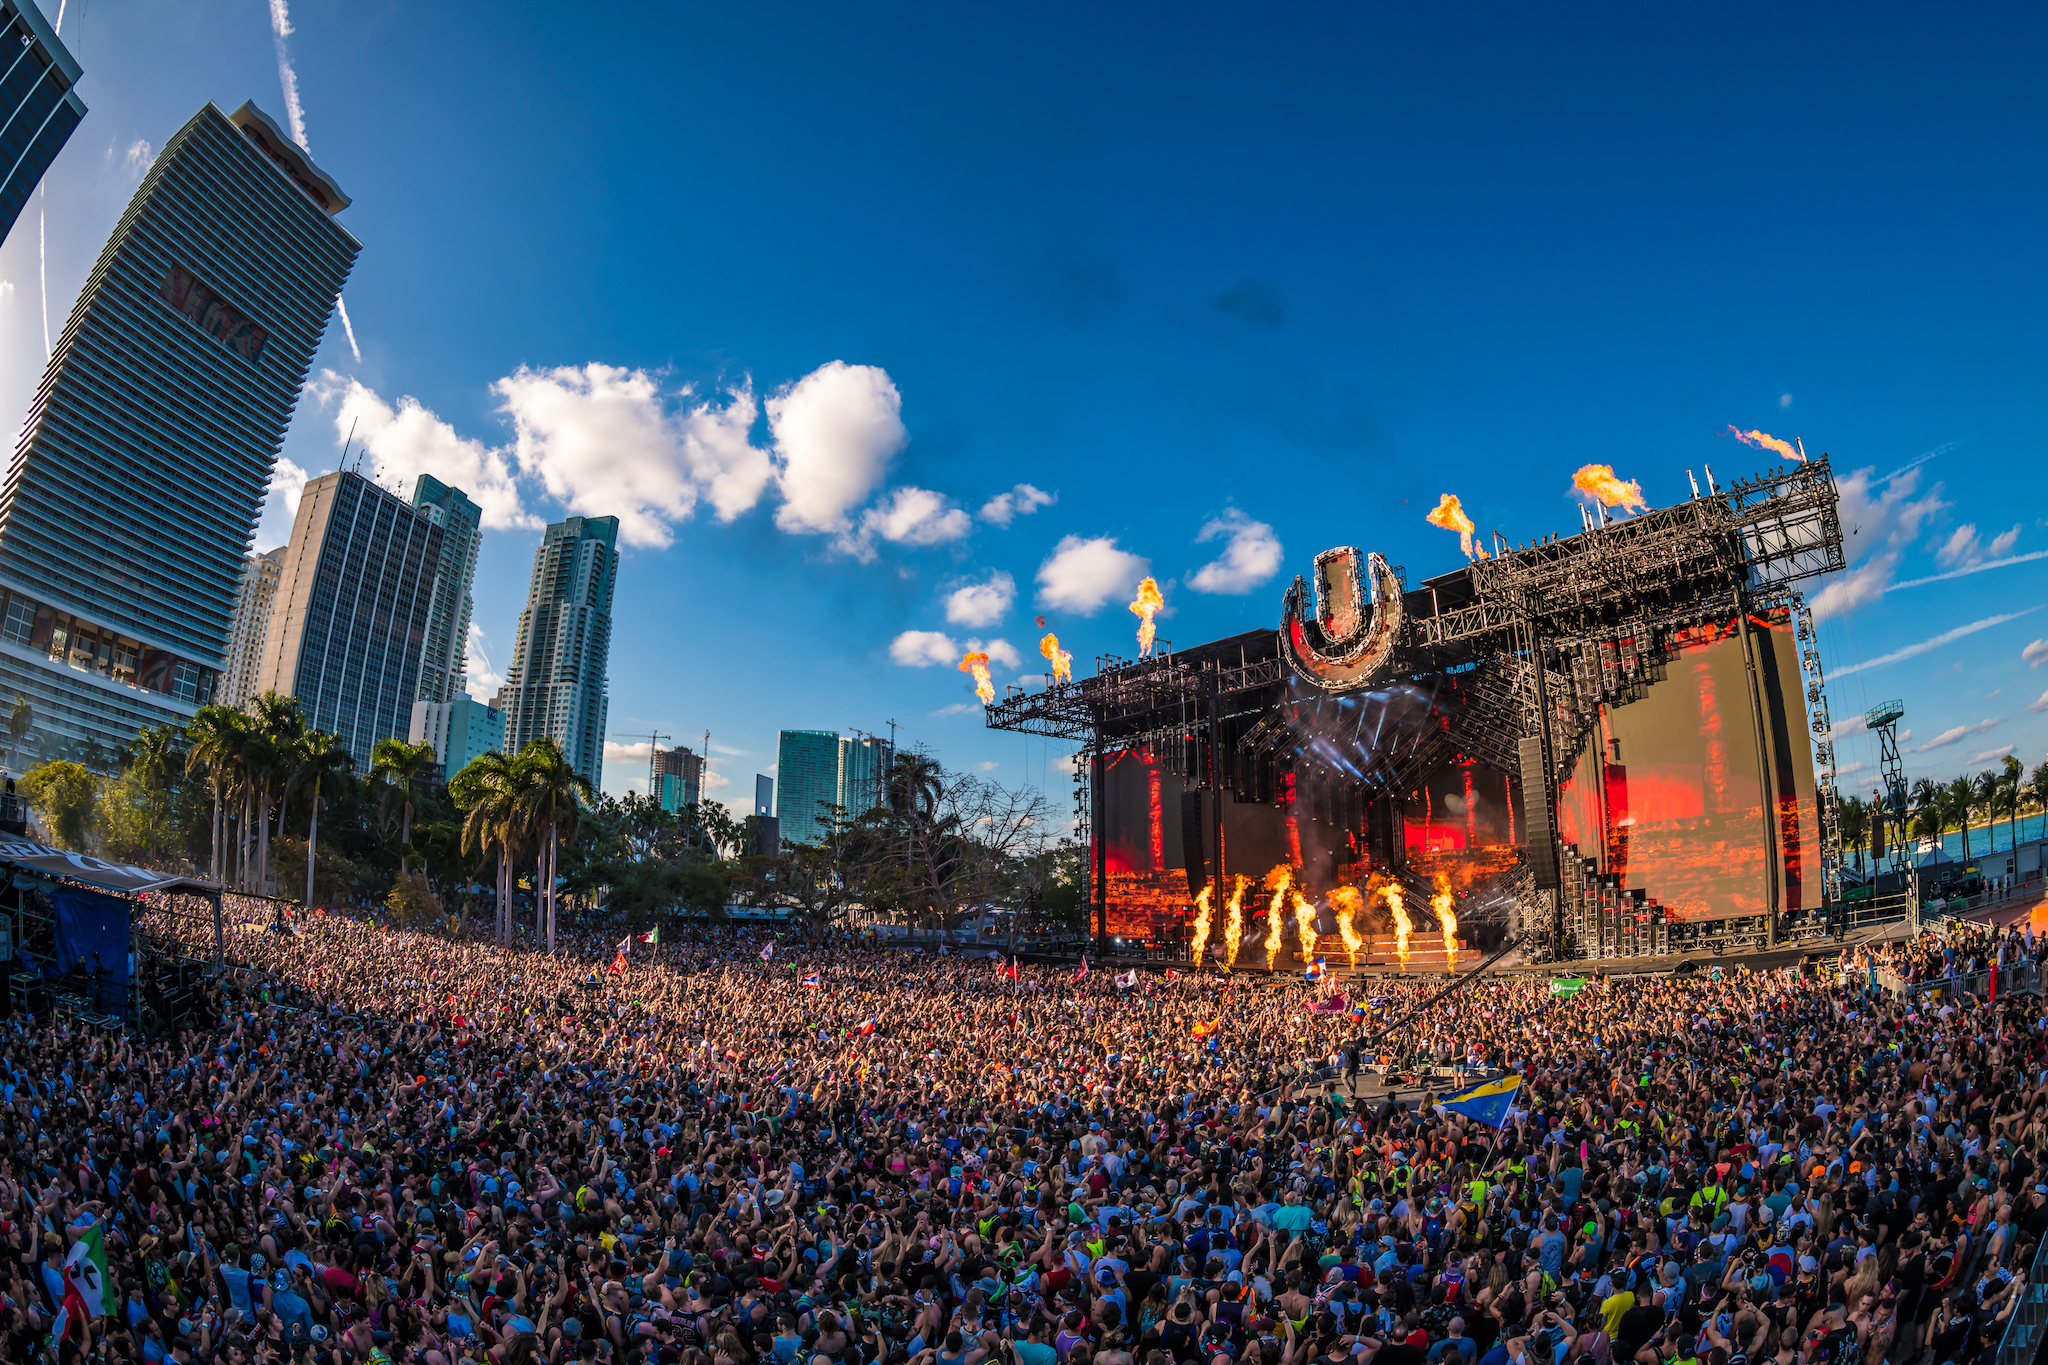 How will Coronavirus affect Miami's Ultra Music Festival 2020?